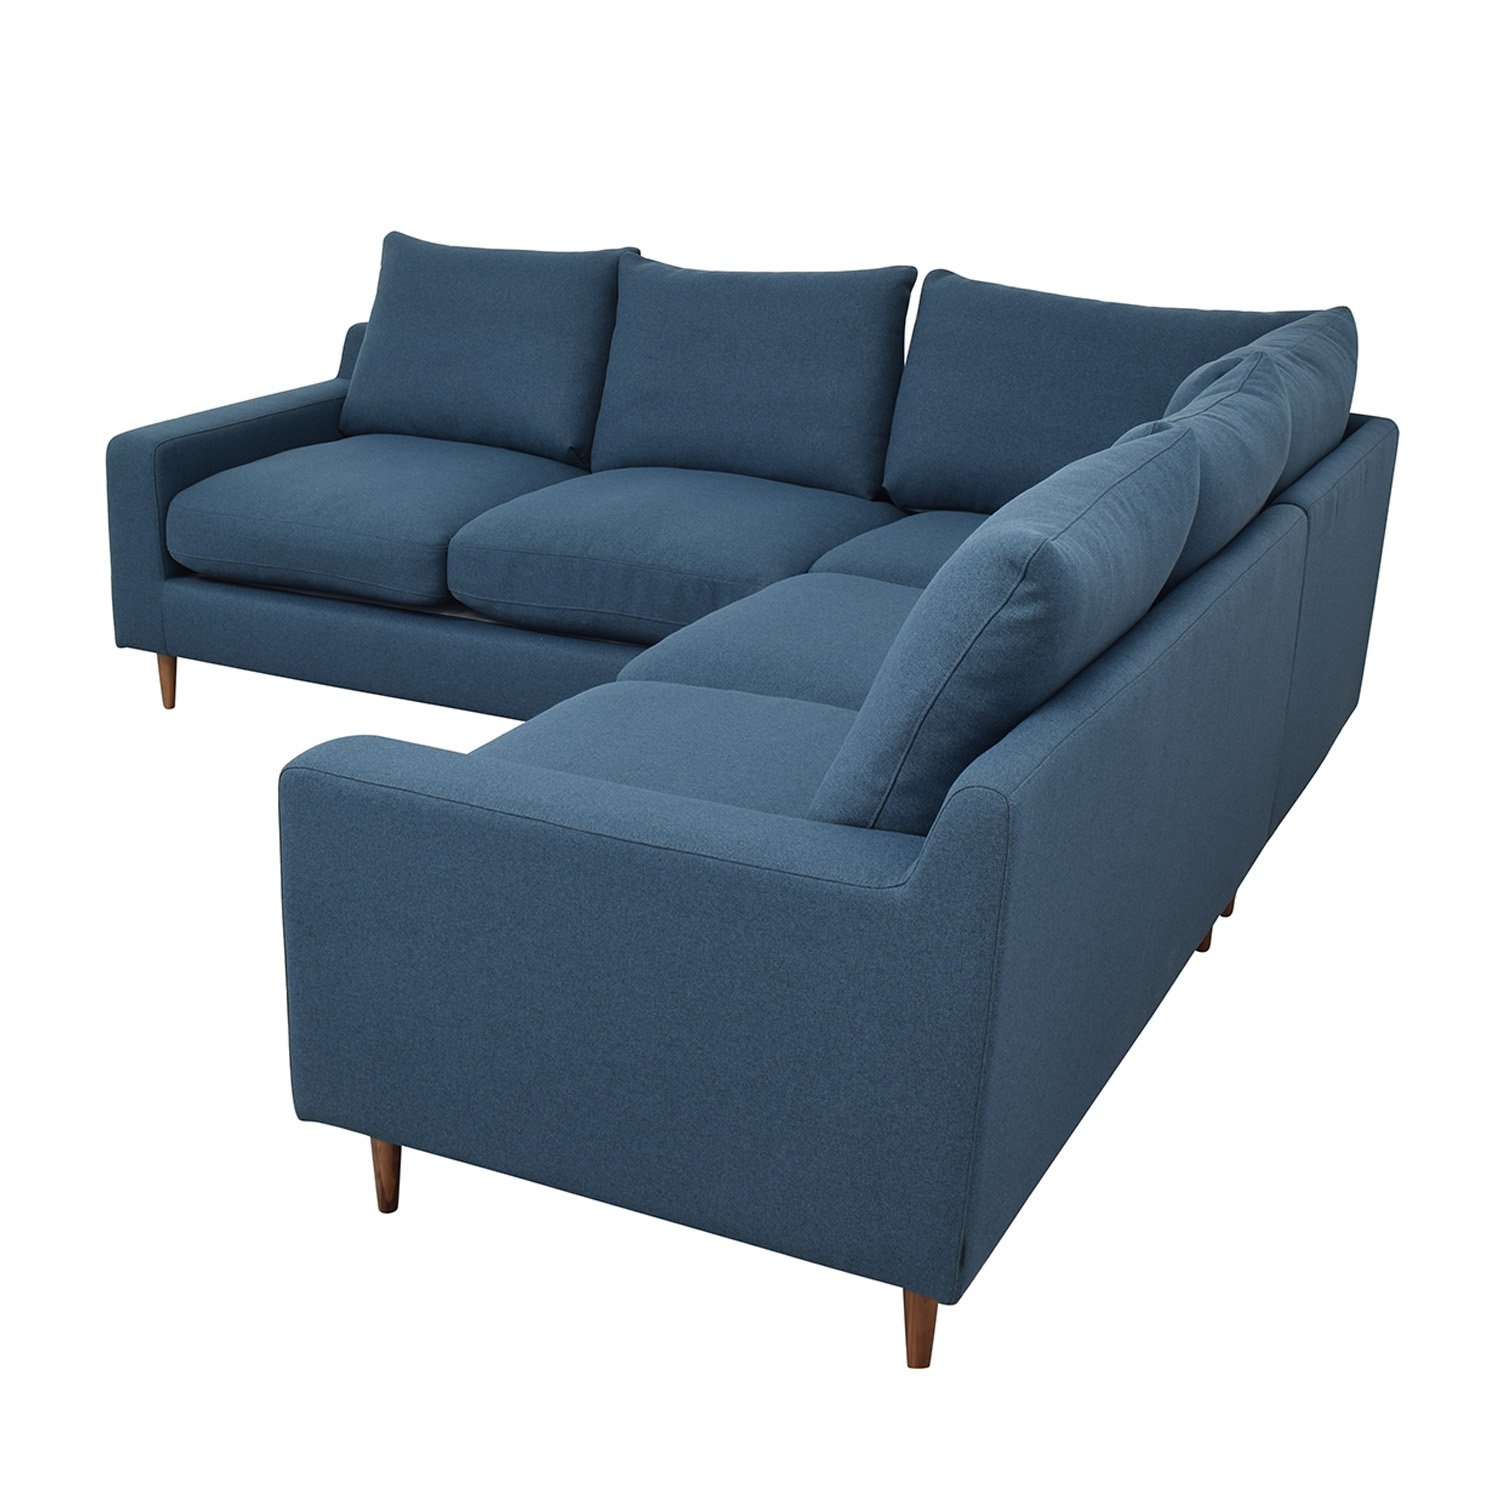 Interior Define Sloan Blue L-Shaped Sectional on sale